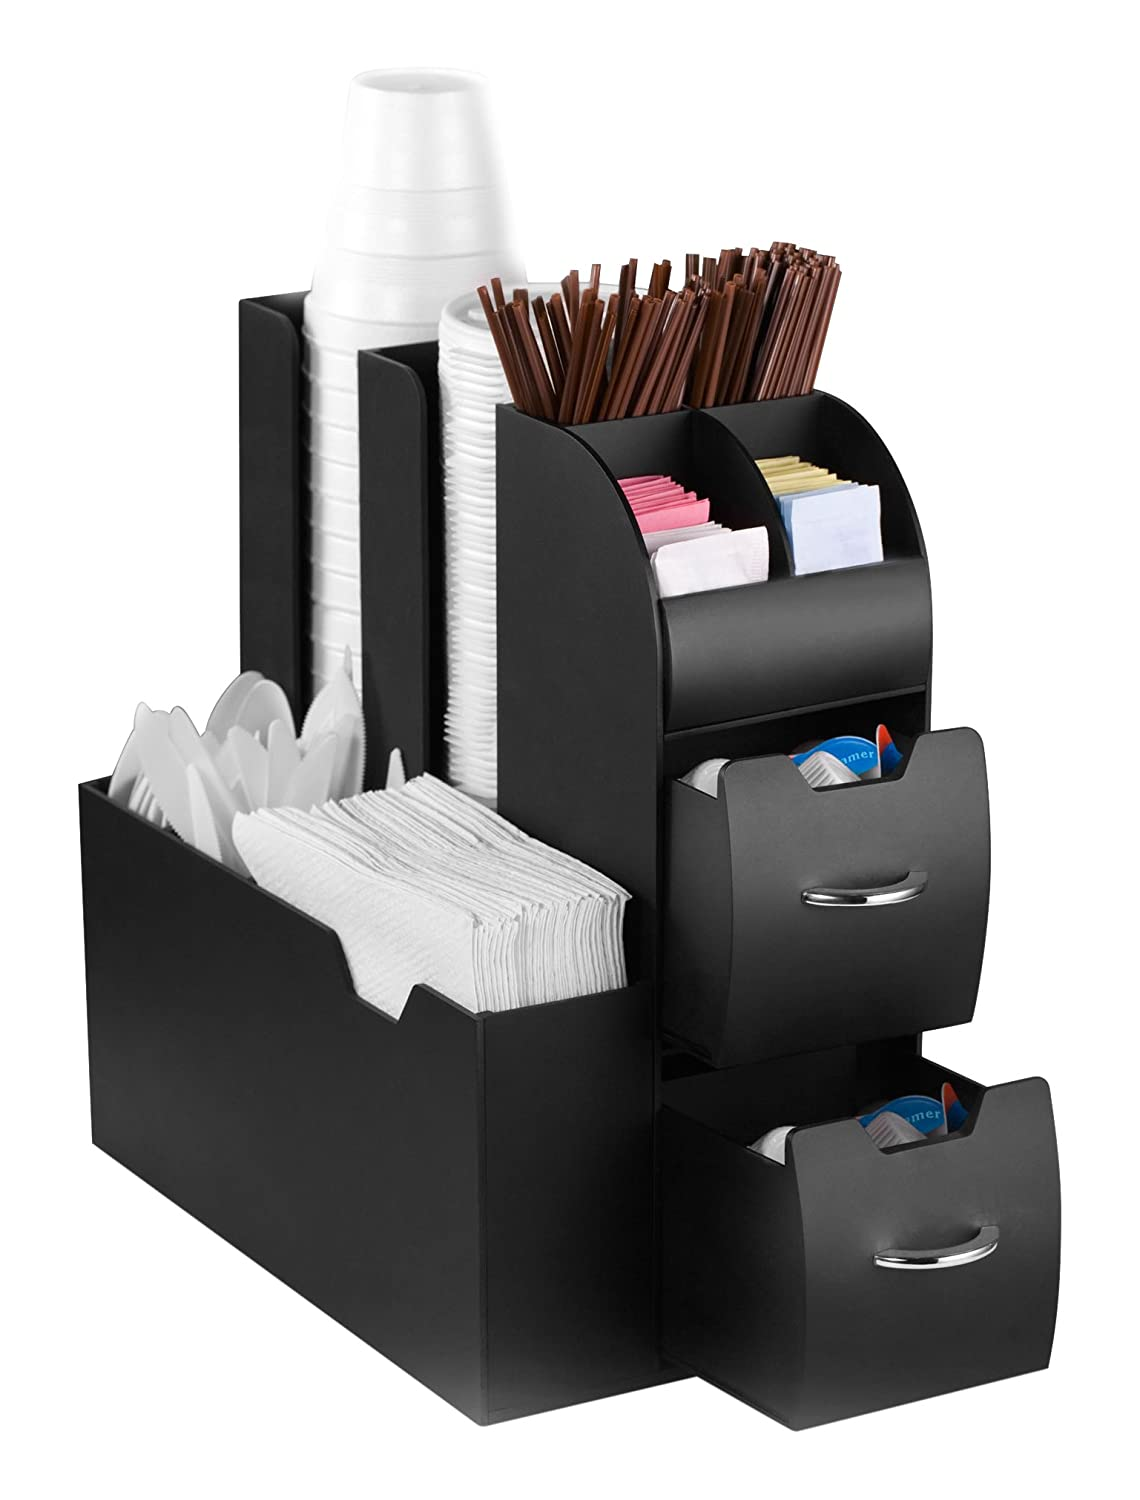 CEP Coffee Condiment and Accessory Caddy, Black 2230020011